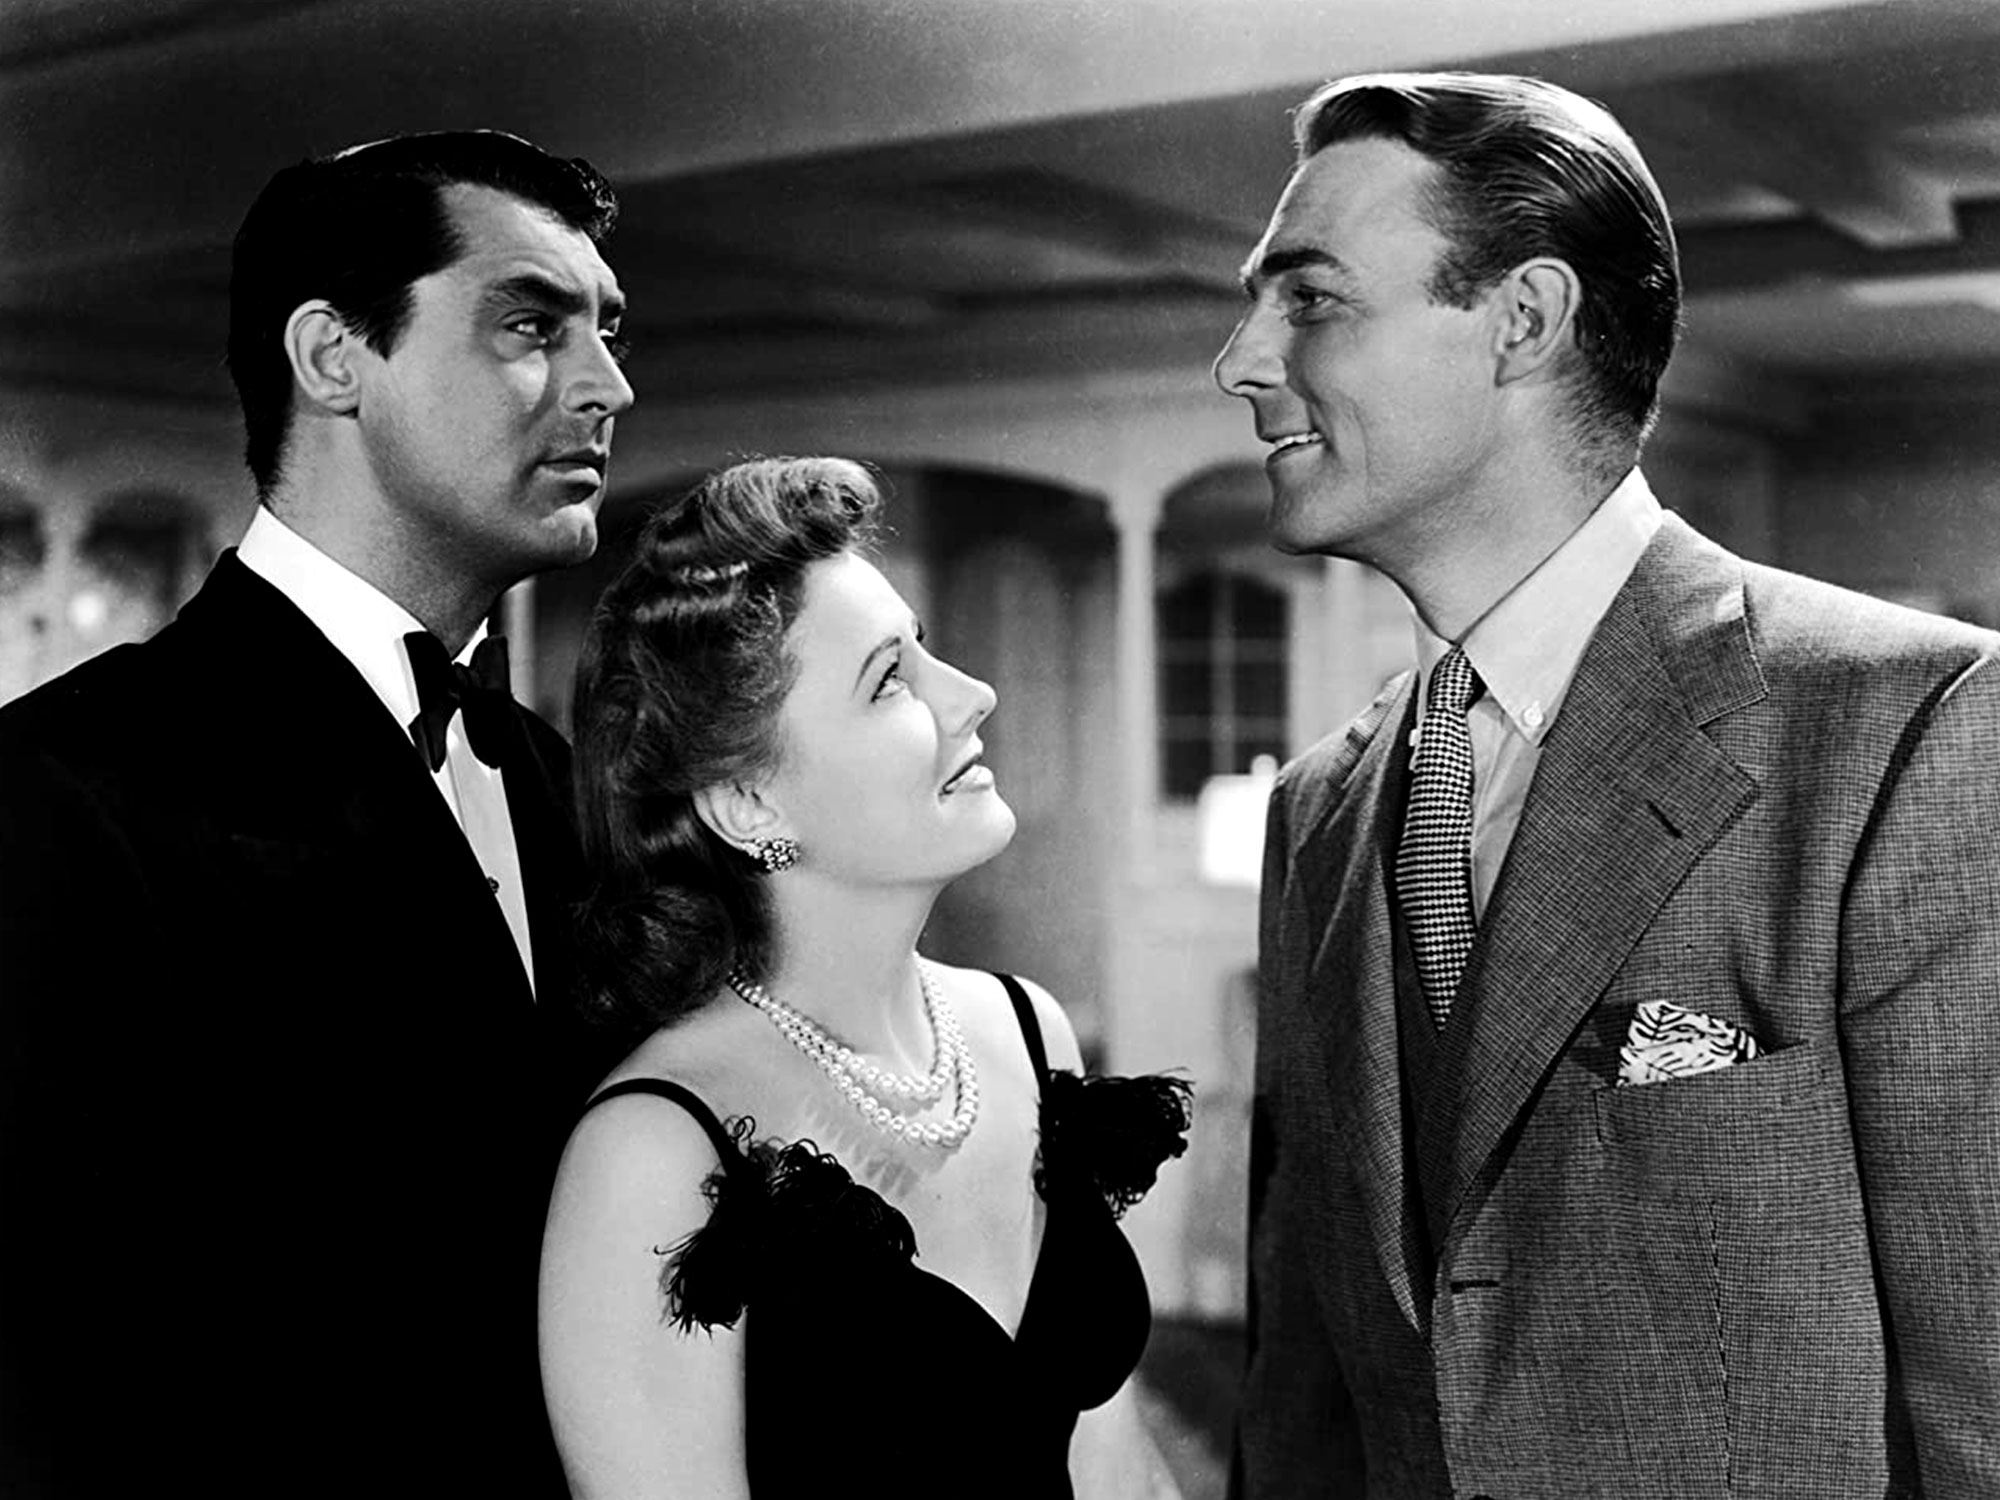 Irene Dunne, Cary Grant and Randolph Scott in My Favorite Wife (1940)